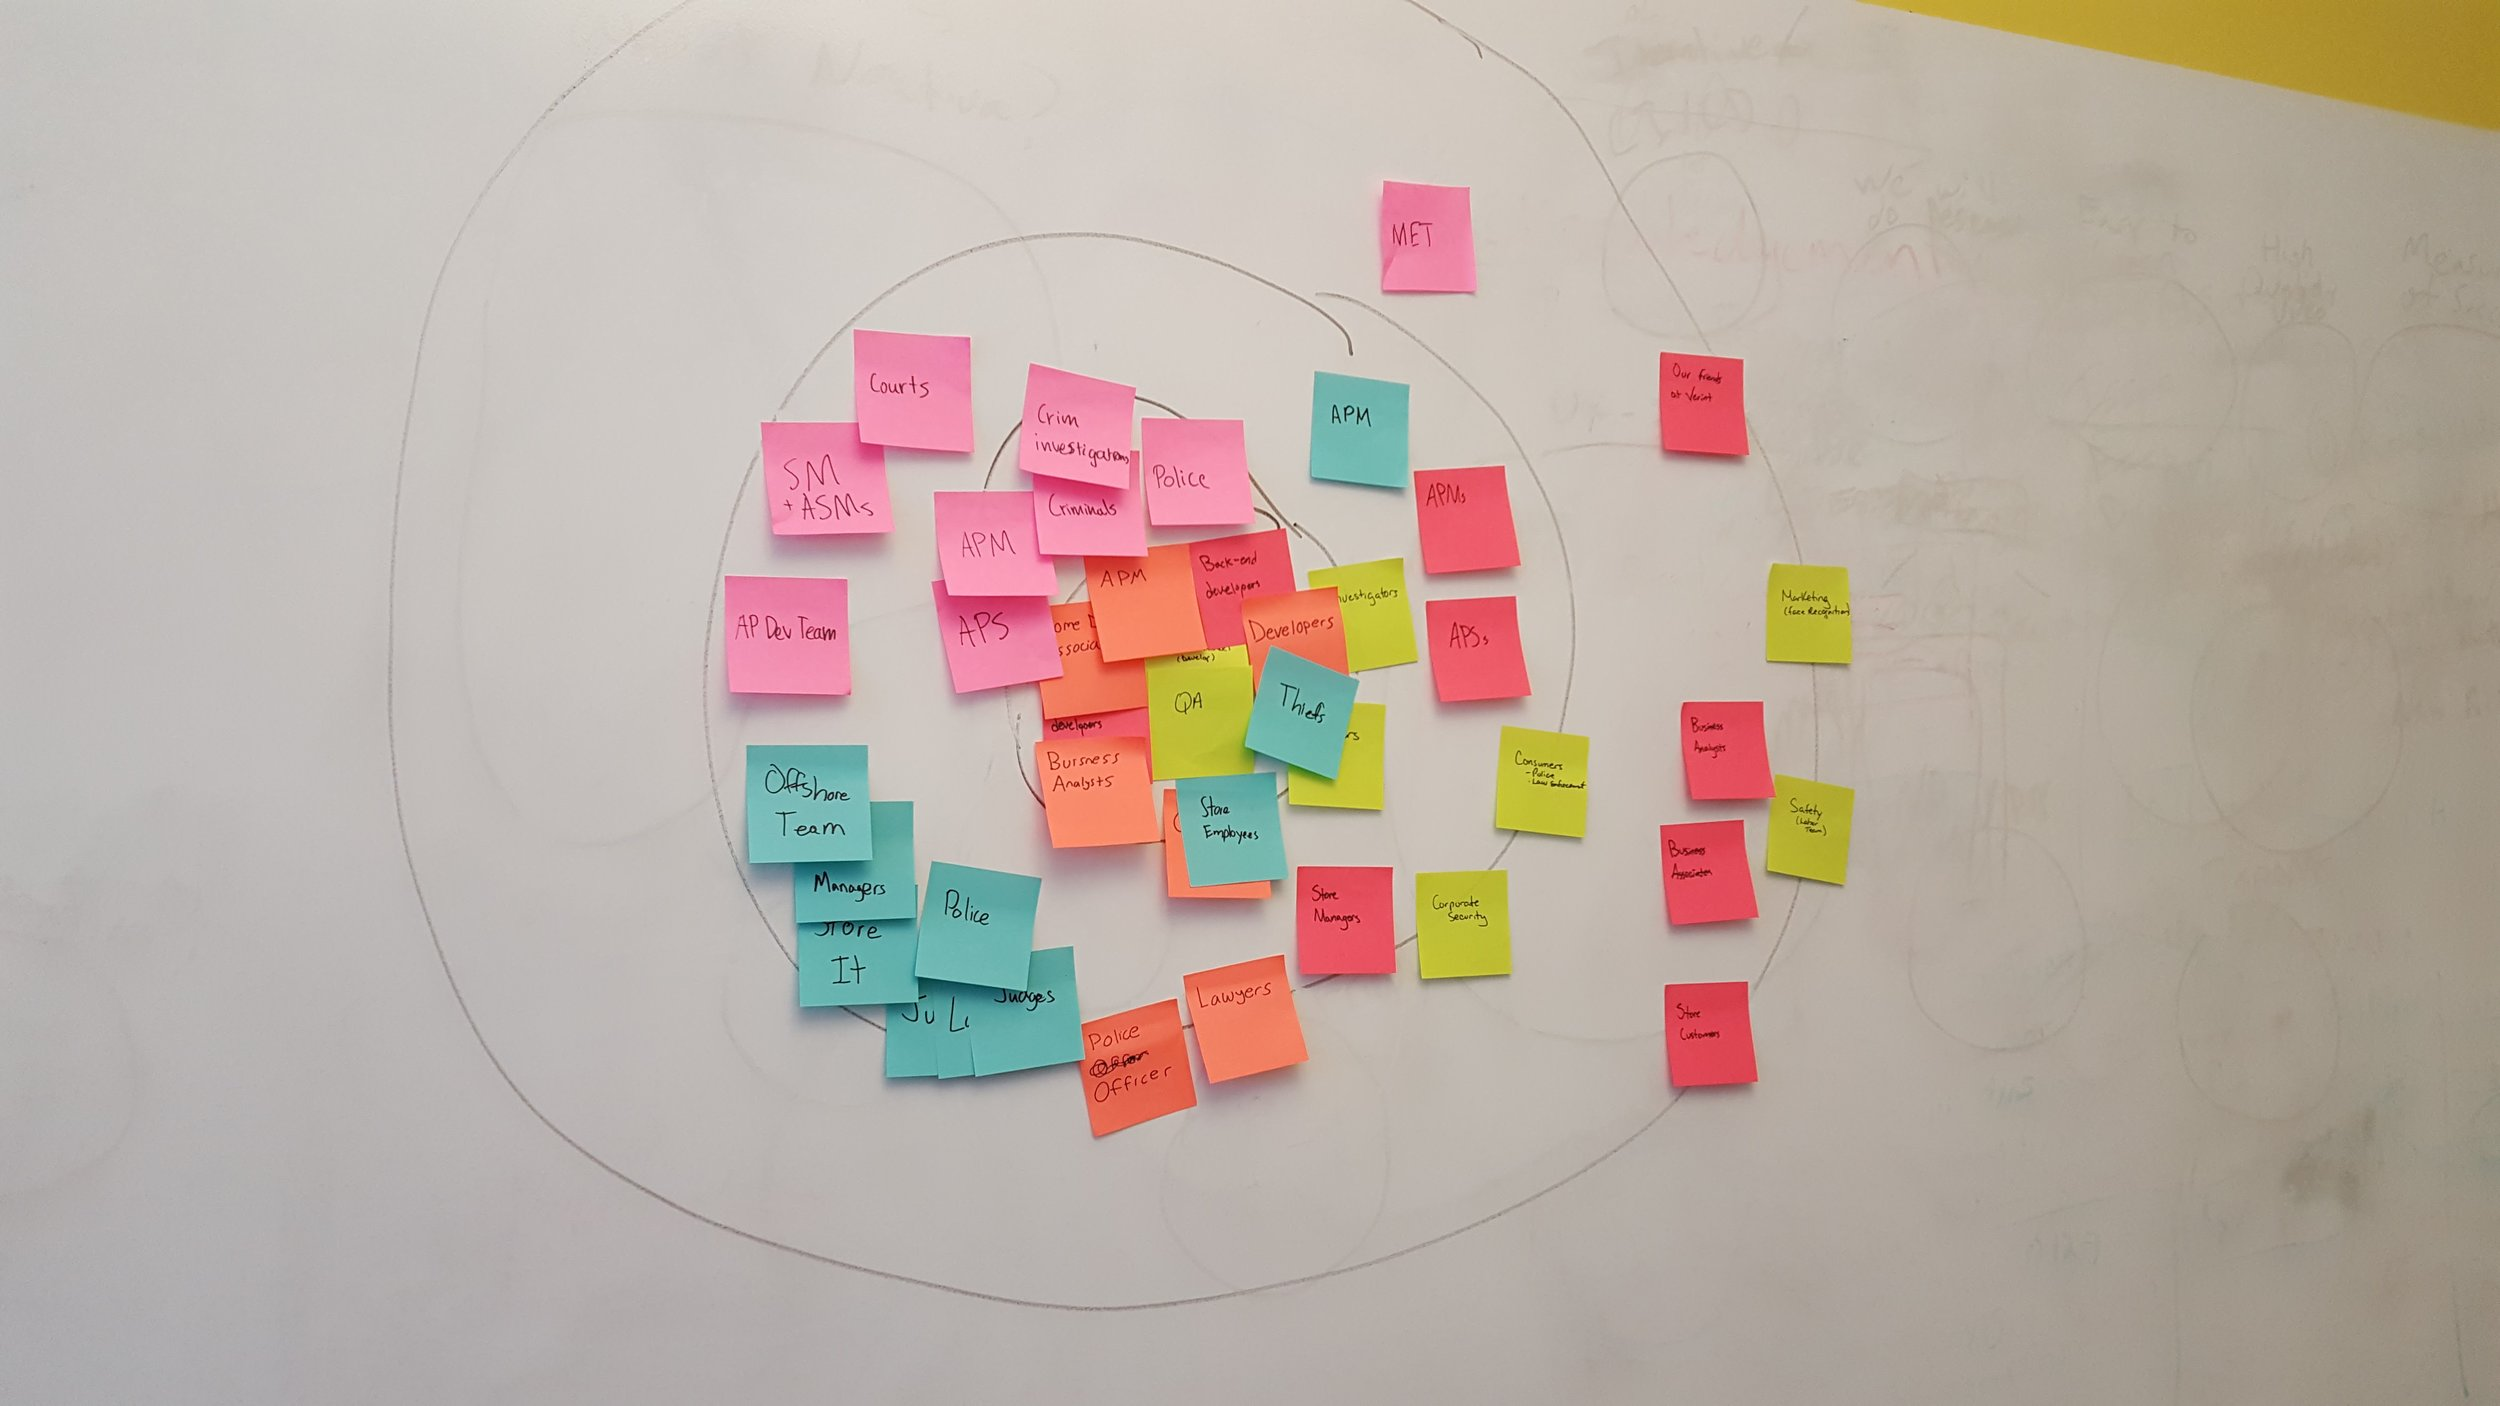 stakeholder mapping session